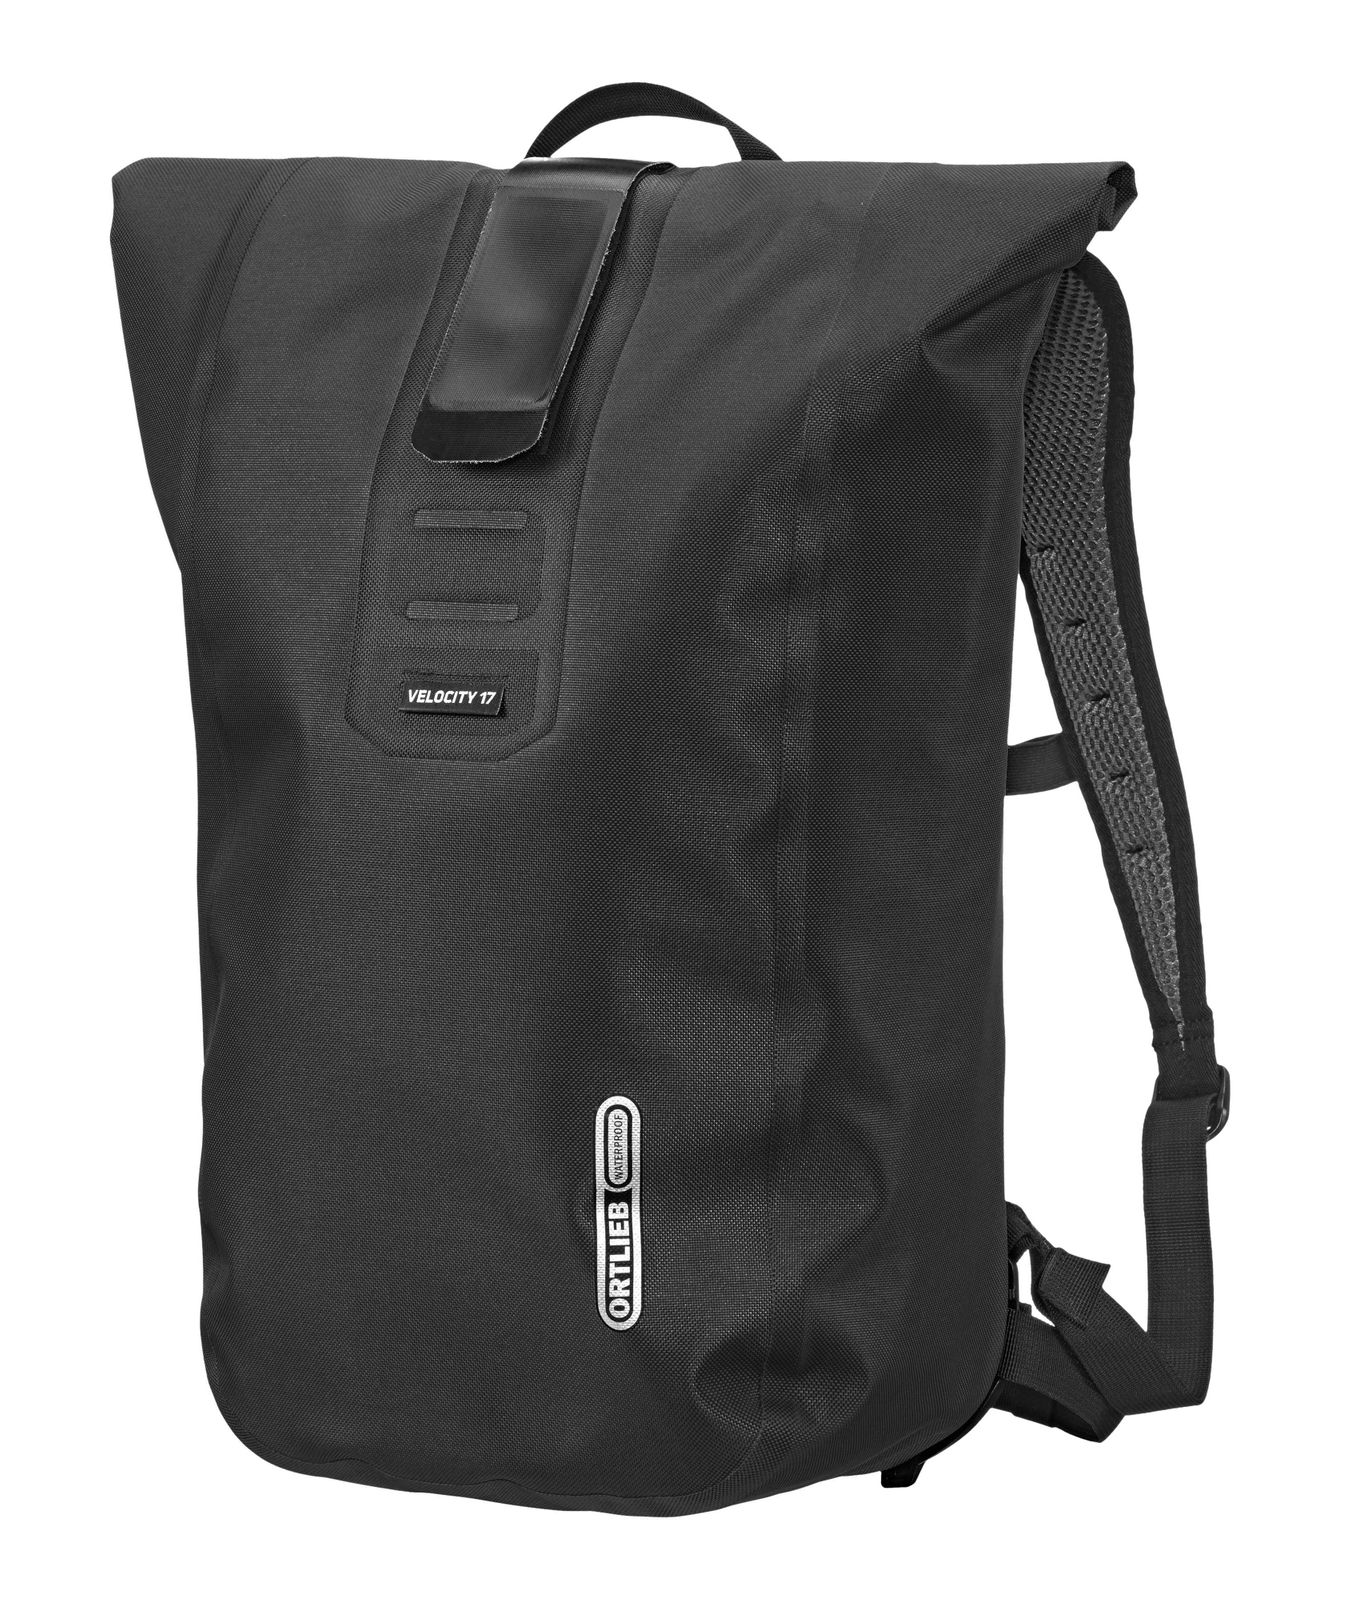 ORTLIEB Velocity PS City Backpack 17L Black